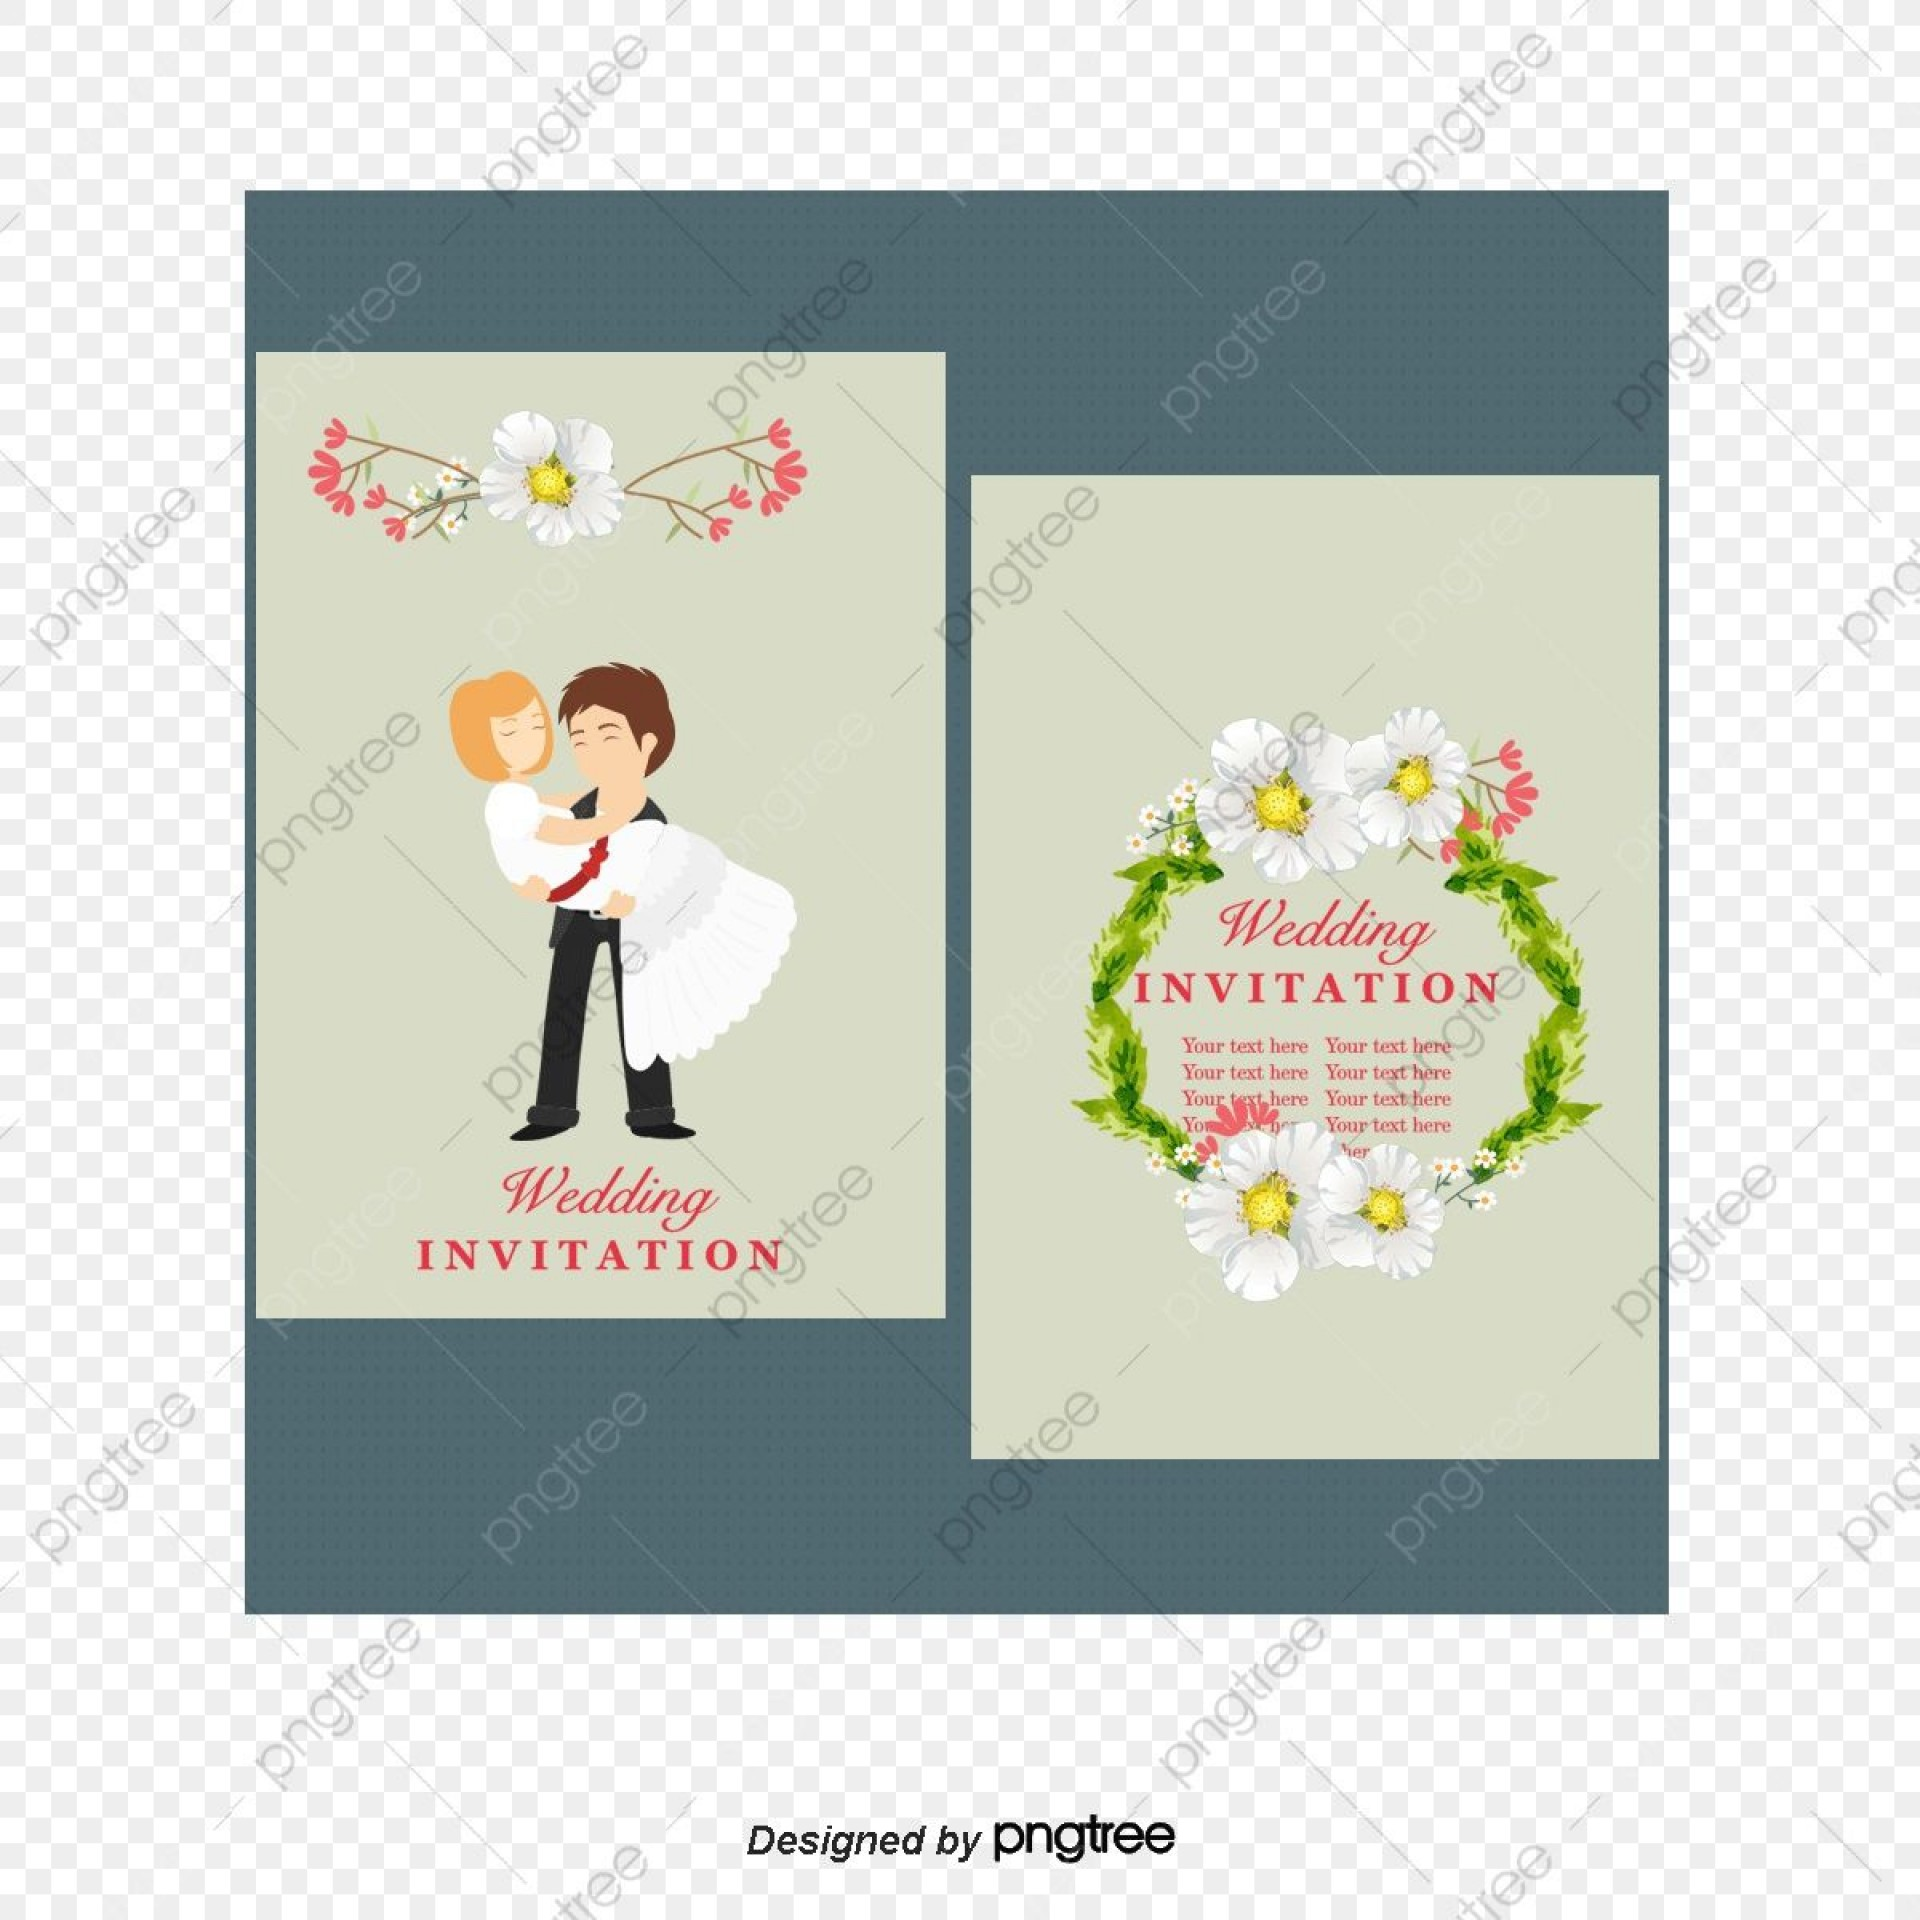 006 Marvelou Free Download Marriage Invitation Template Design  Card Psd After Effect1920